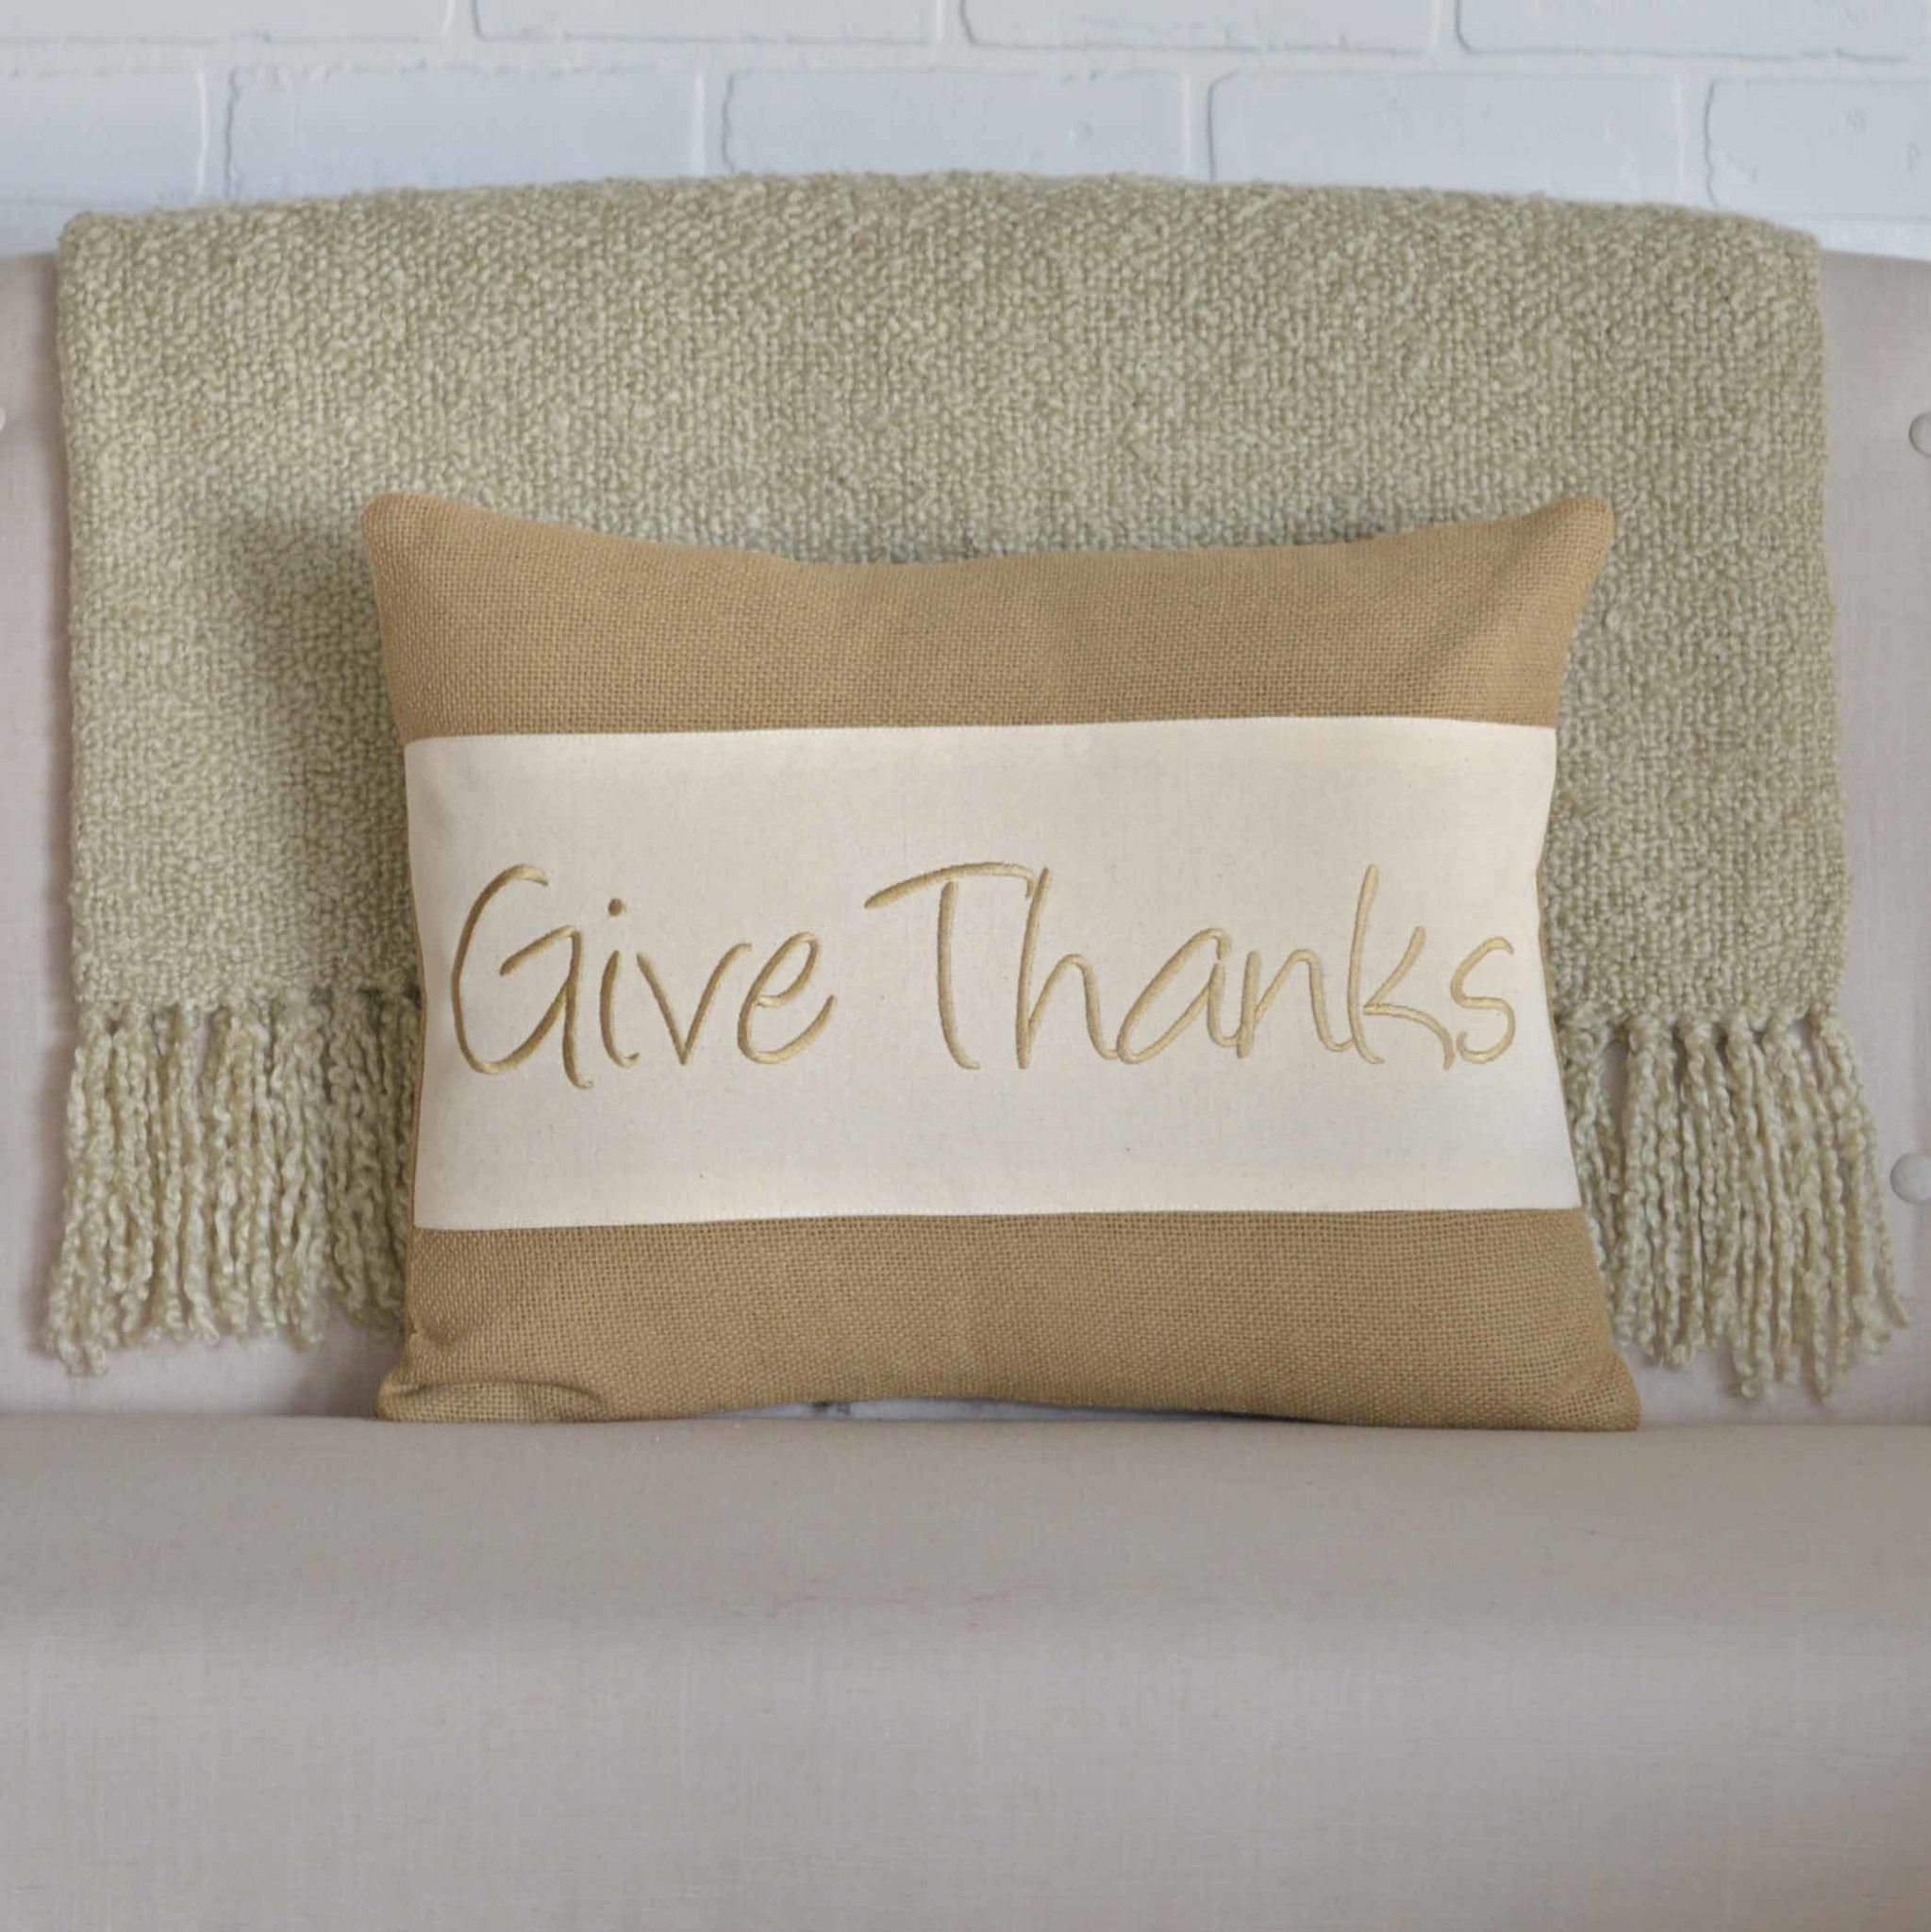 Give Thanks Pillow.